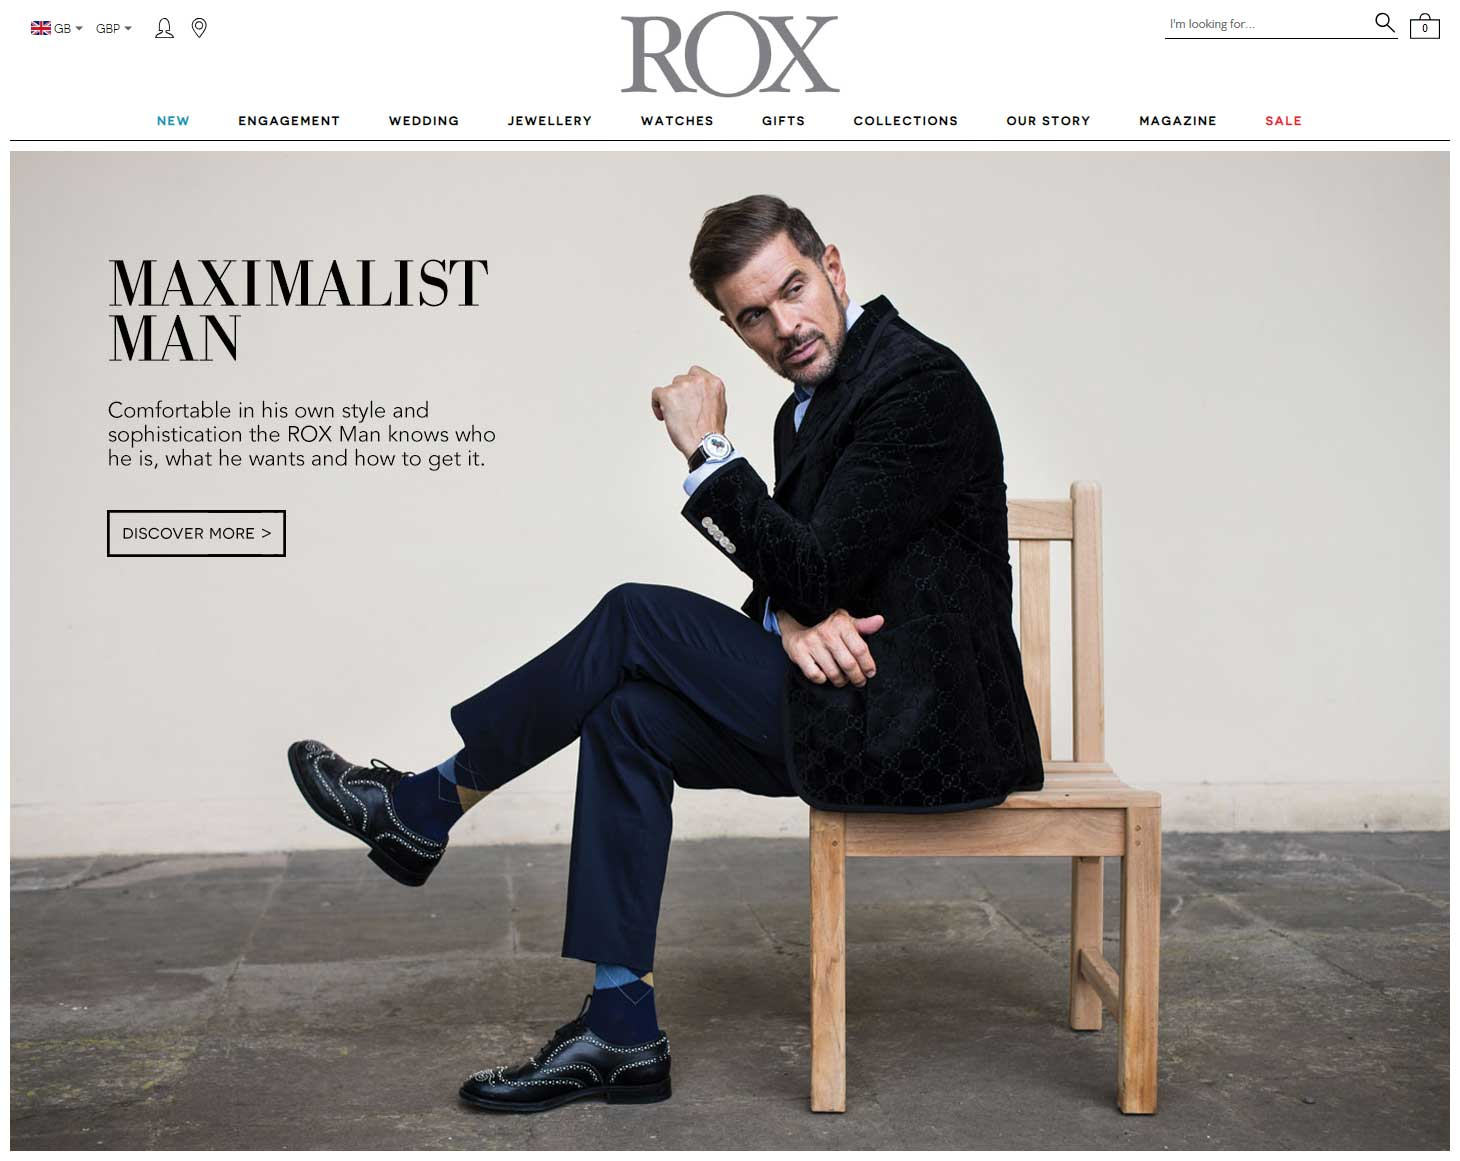 Responsive menu redesign for ROX Jewellers